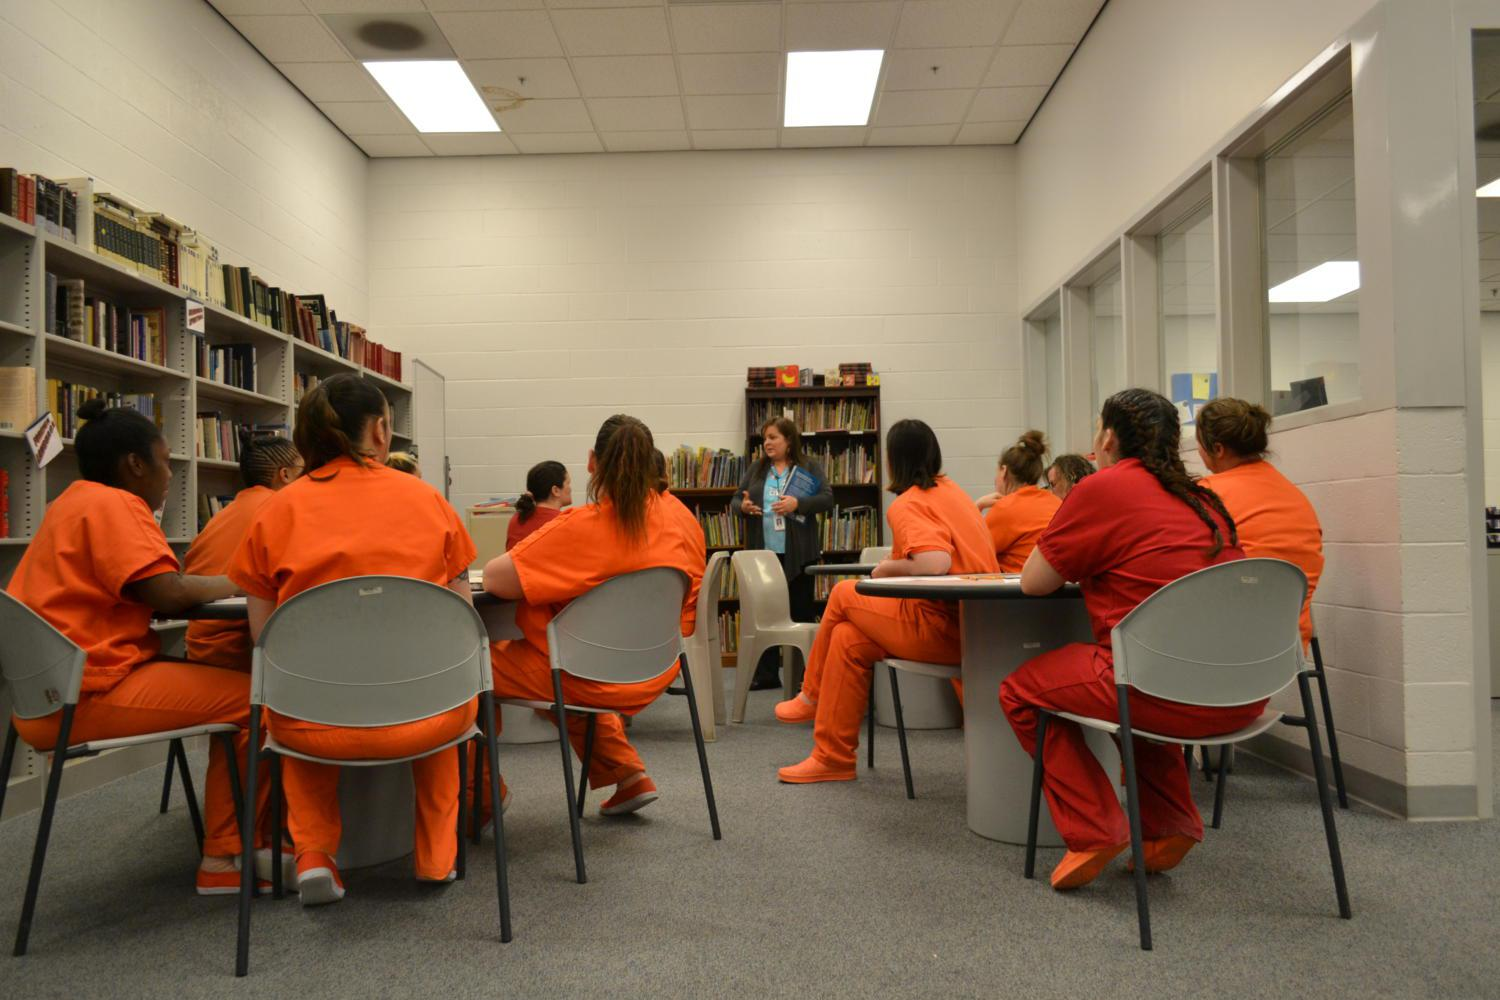 Women in the David L. Moss Correctional Center attend a parenting class, Tulsa, Oklahoma, 2017.